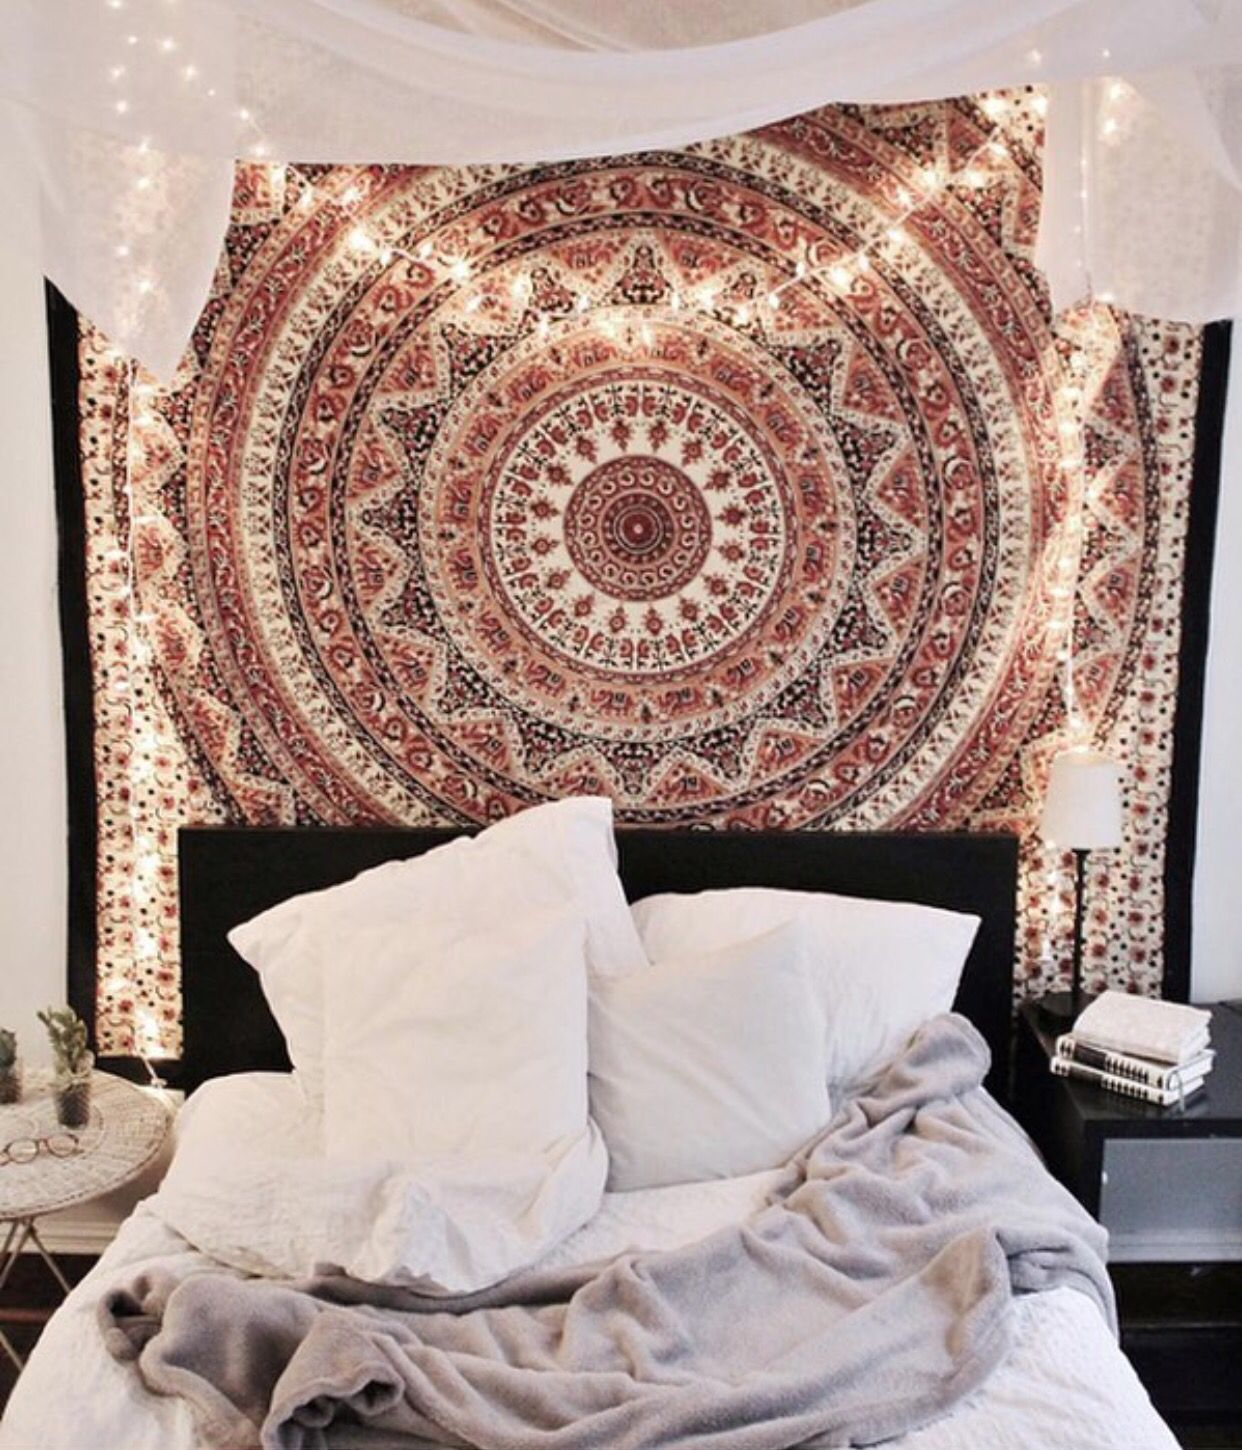 Pin de Quinajin en HOME | Pinterest | Decoración, Dormitorio y Recamara